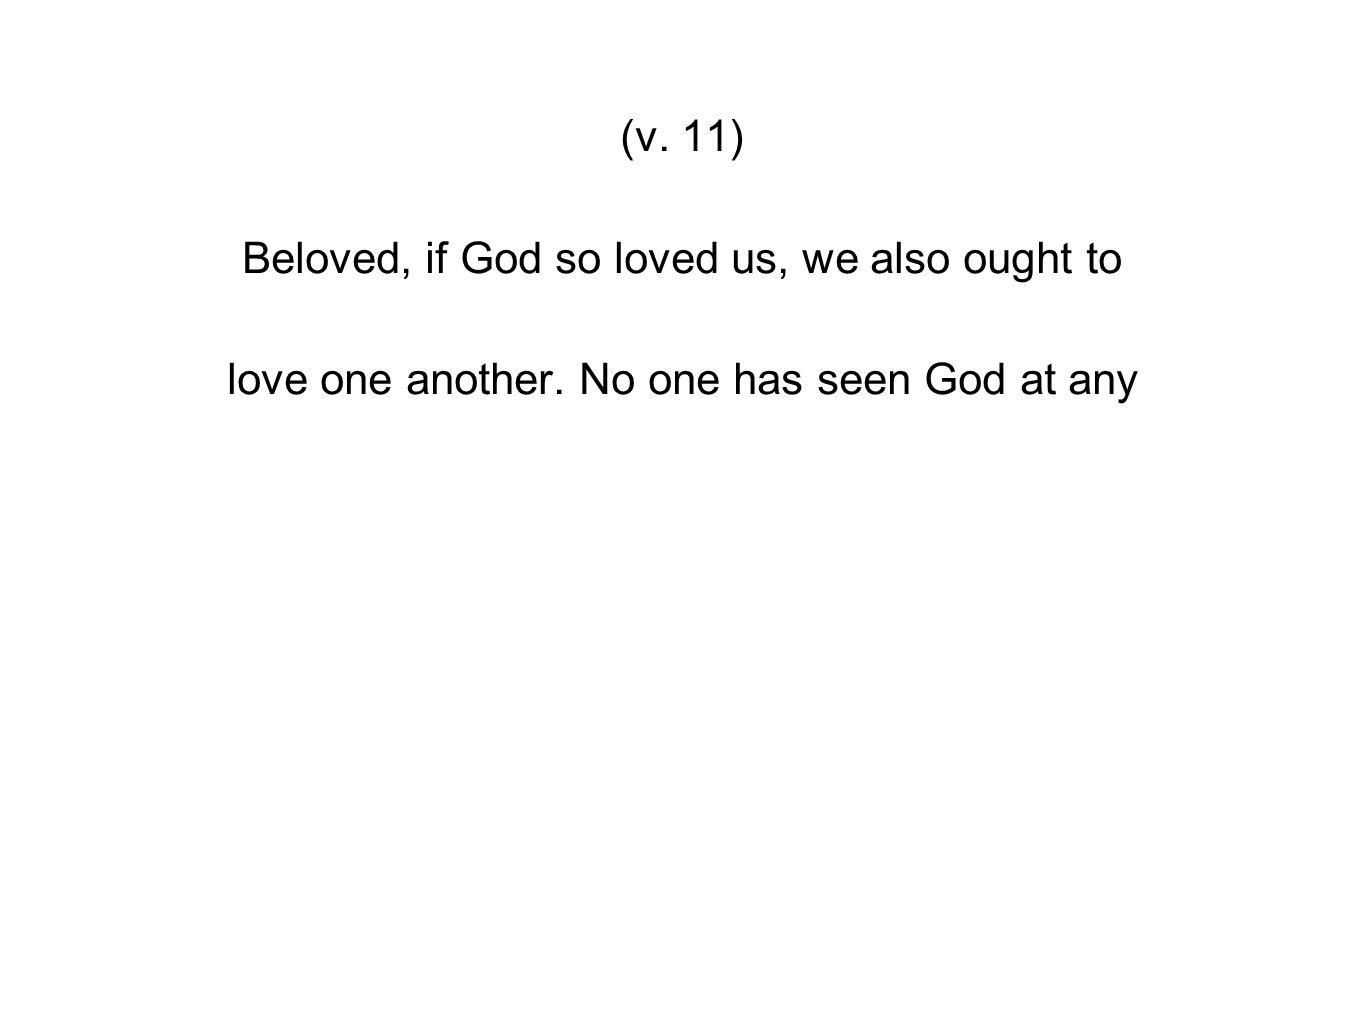 (v. 11) Beloved, if God so loved us, we also ought to love one another. No one has seen God at any